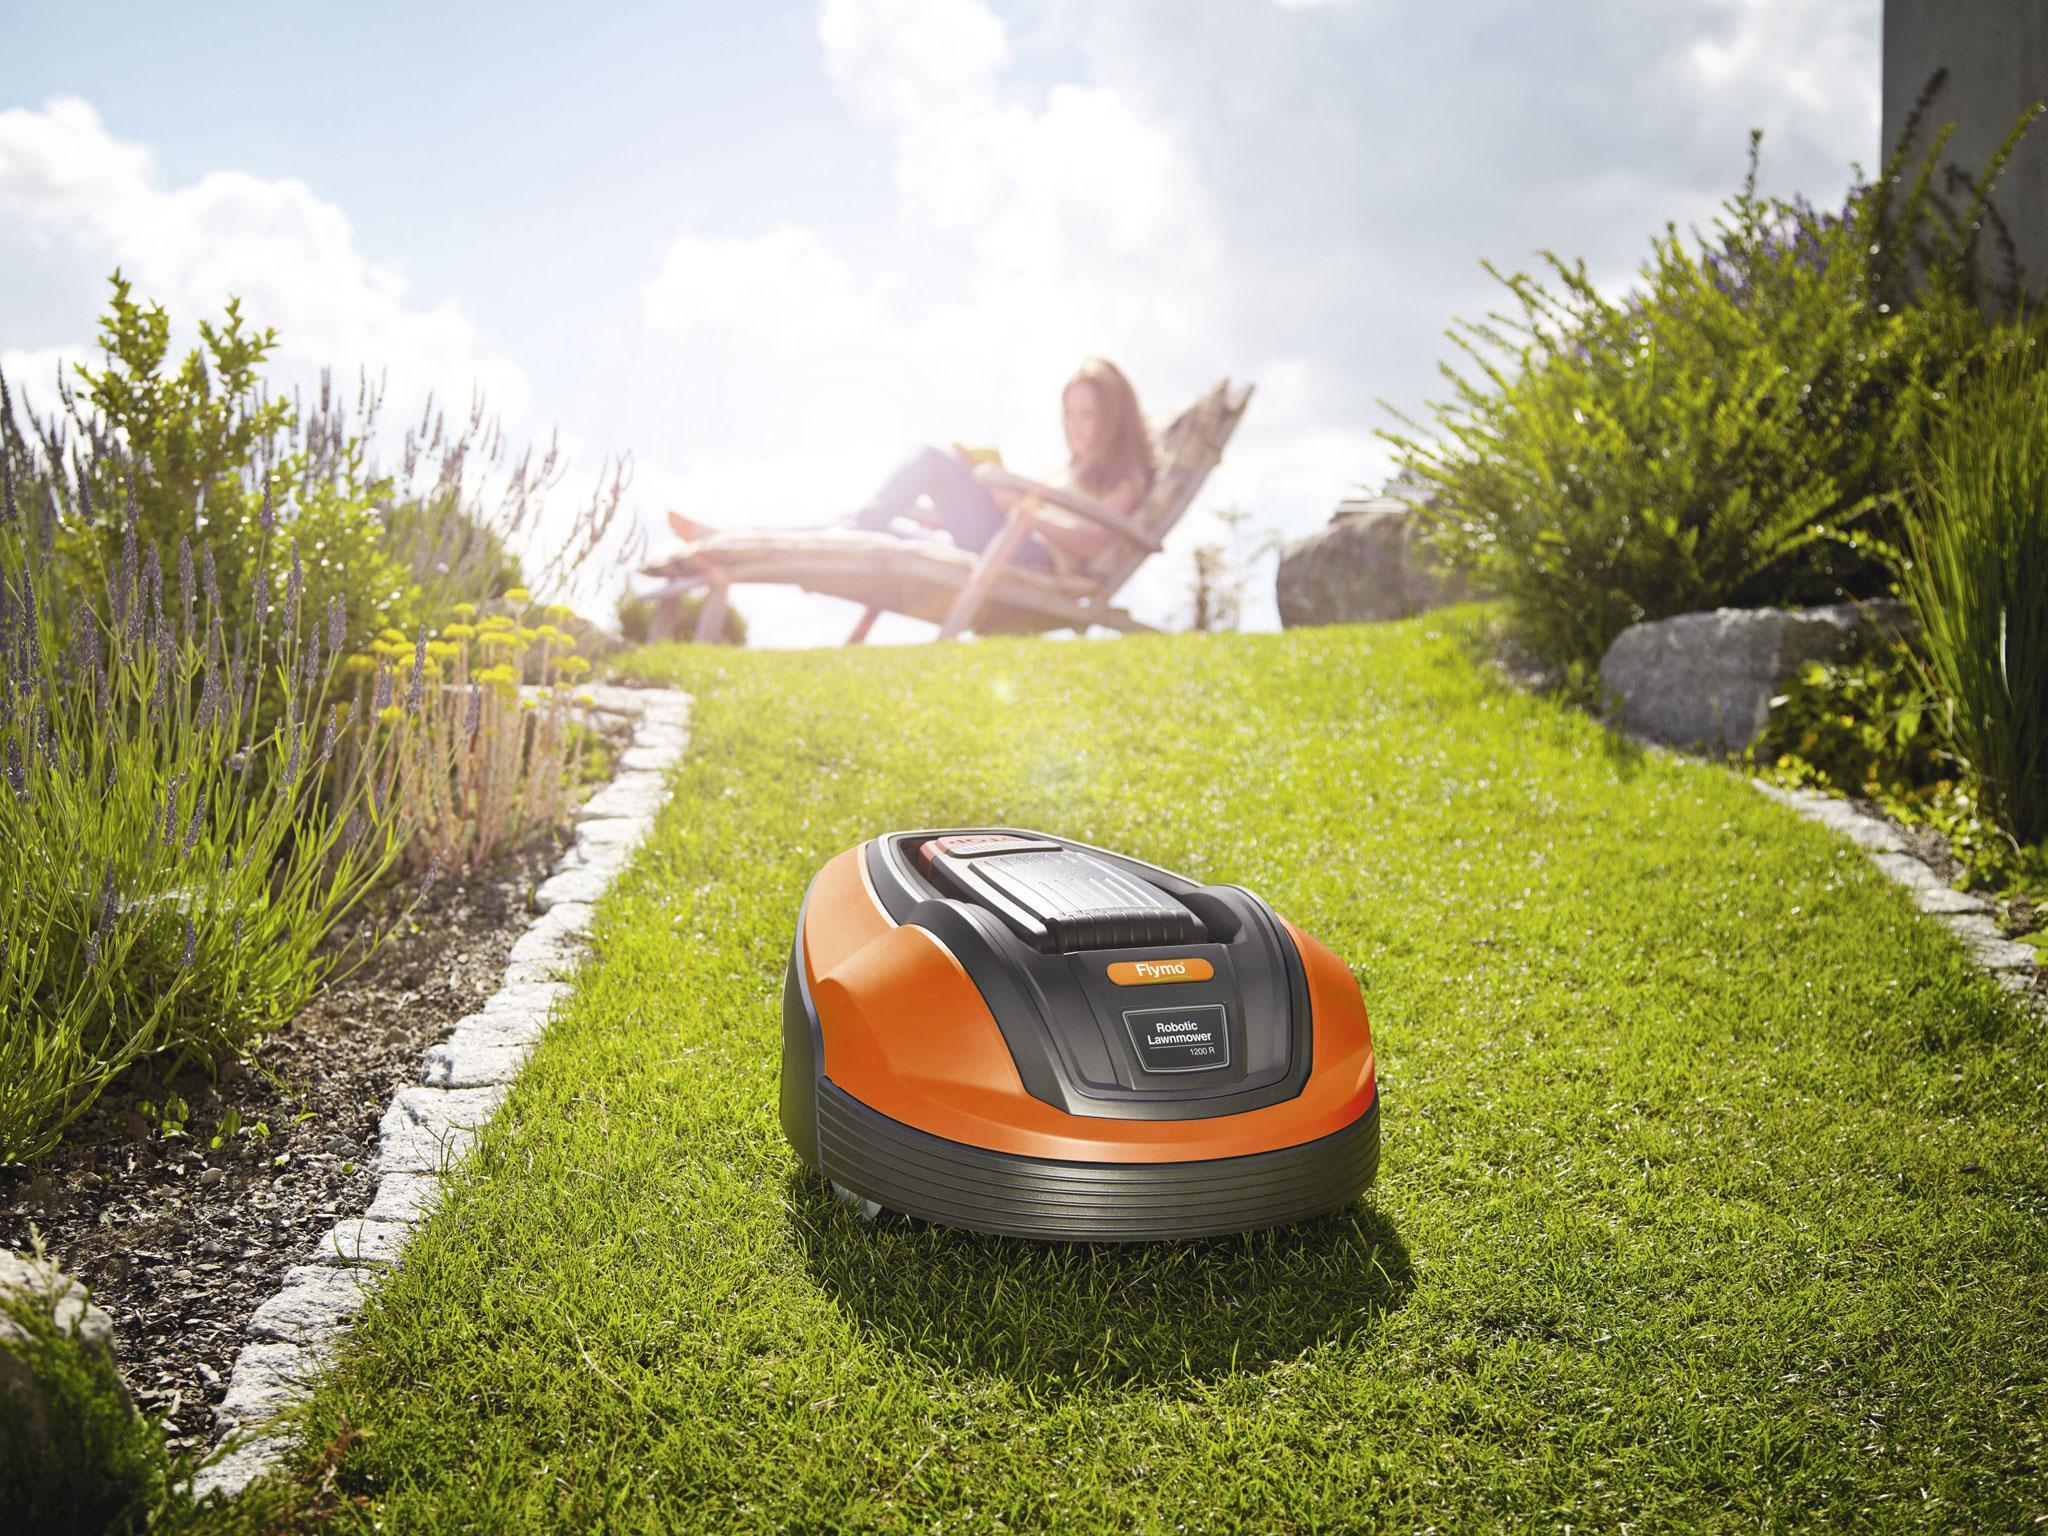 9 best robot lawnmowers the independent - Lawn mower for small spaces decor ...